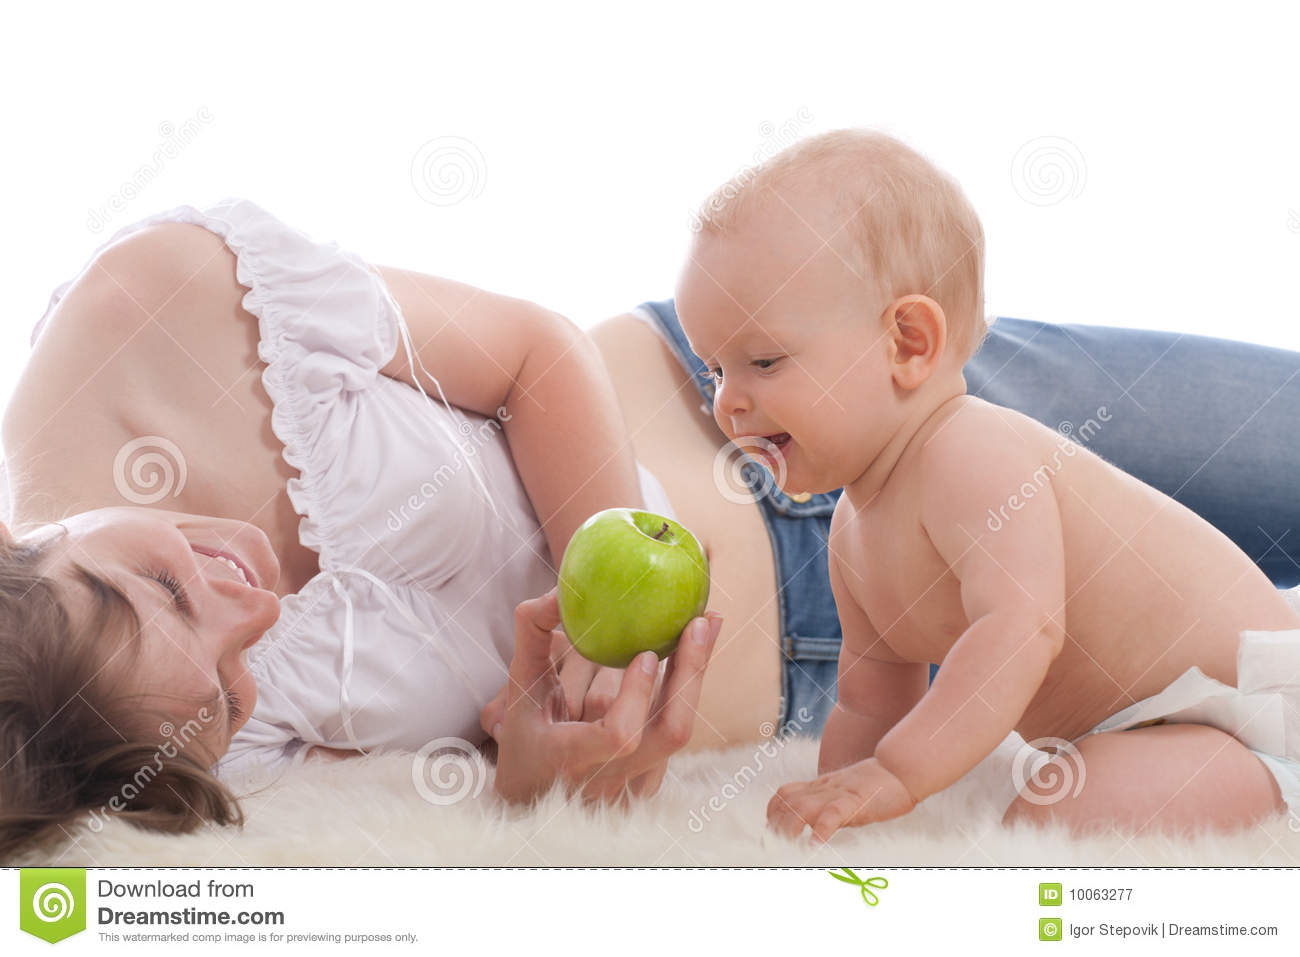 how to give apple to infants